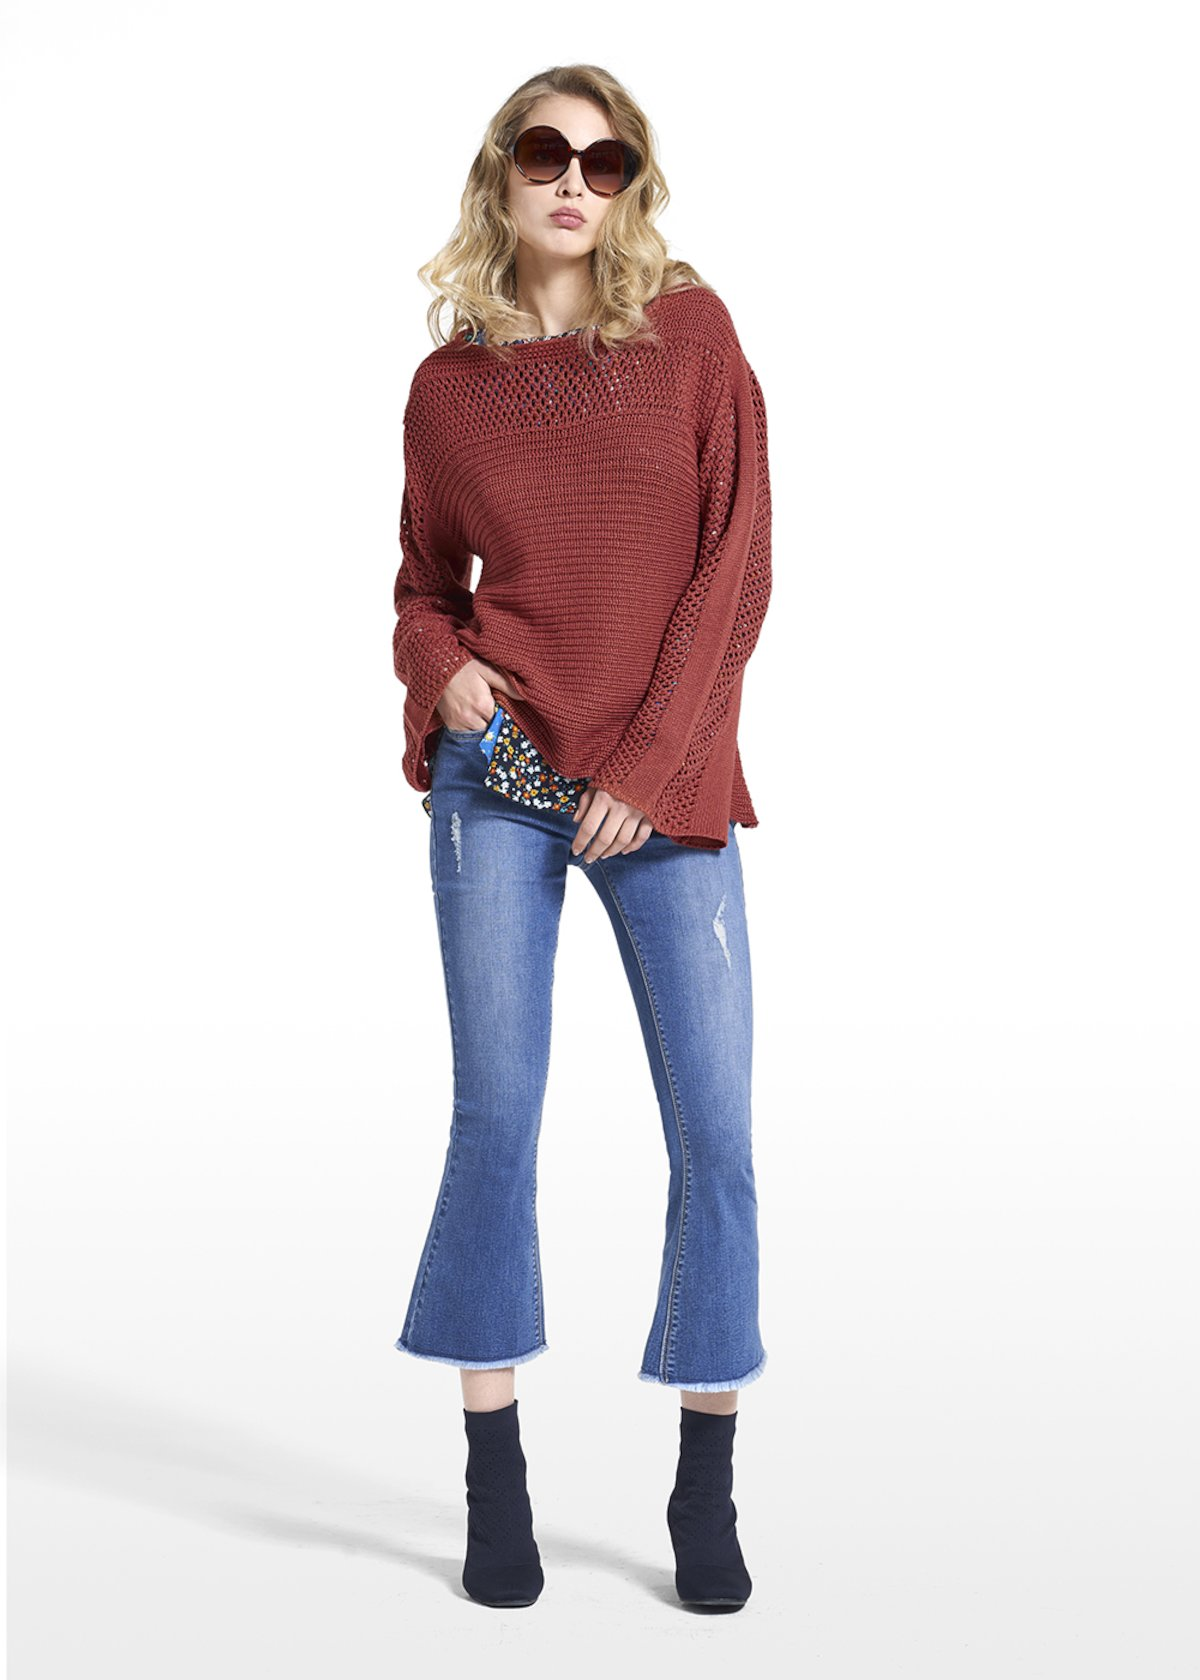 Sweater Mary with boat neckline and long sleeves - Copper_Blue - Woman - Category image